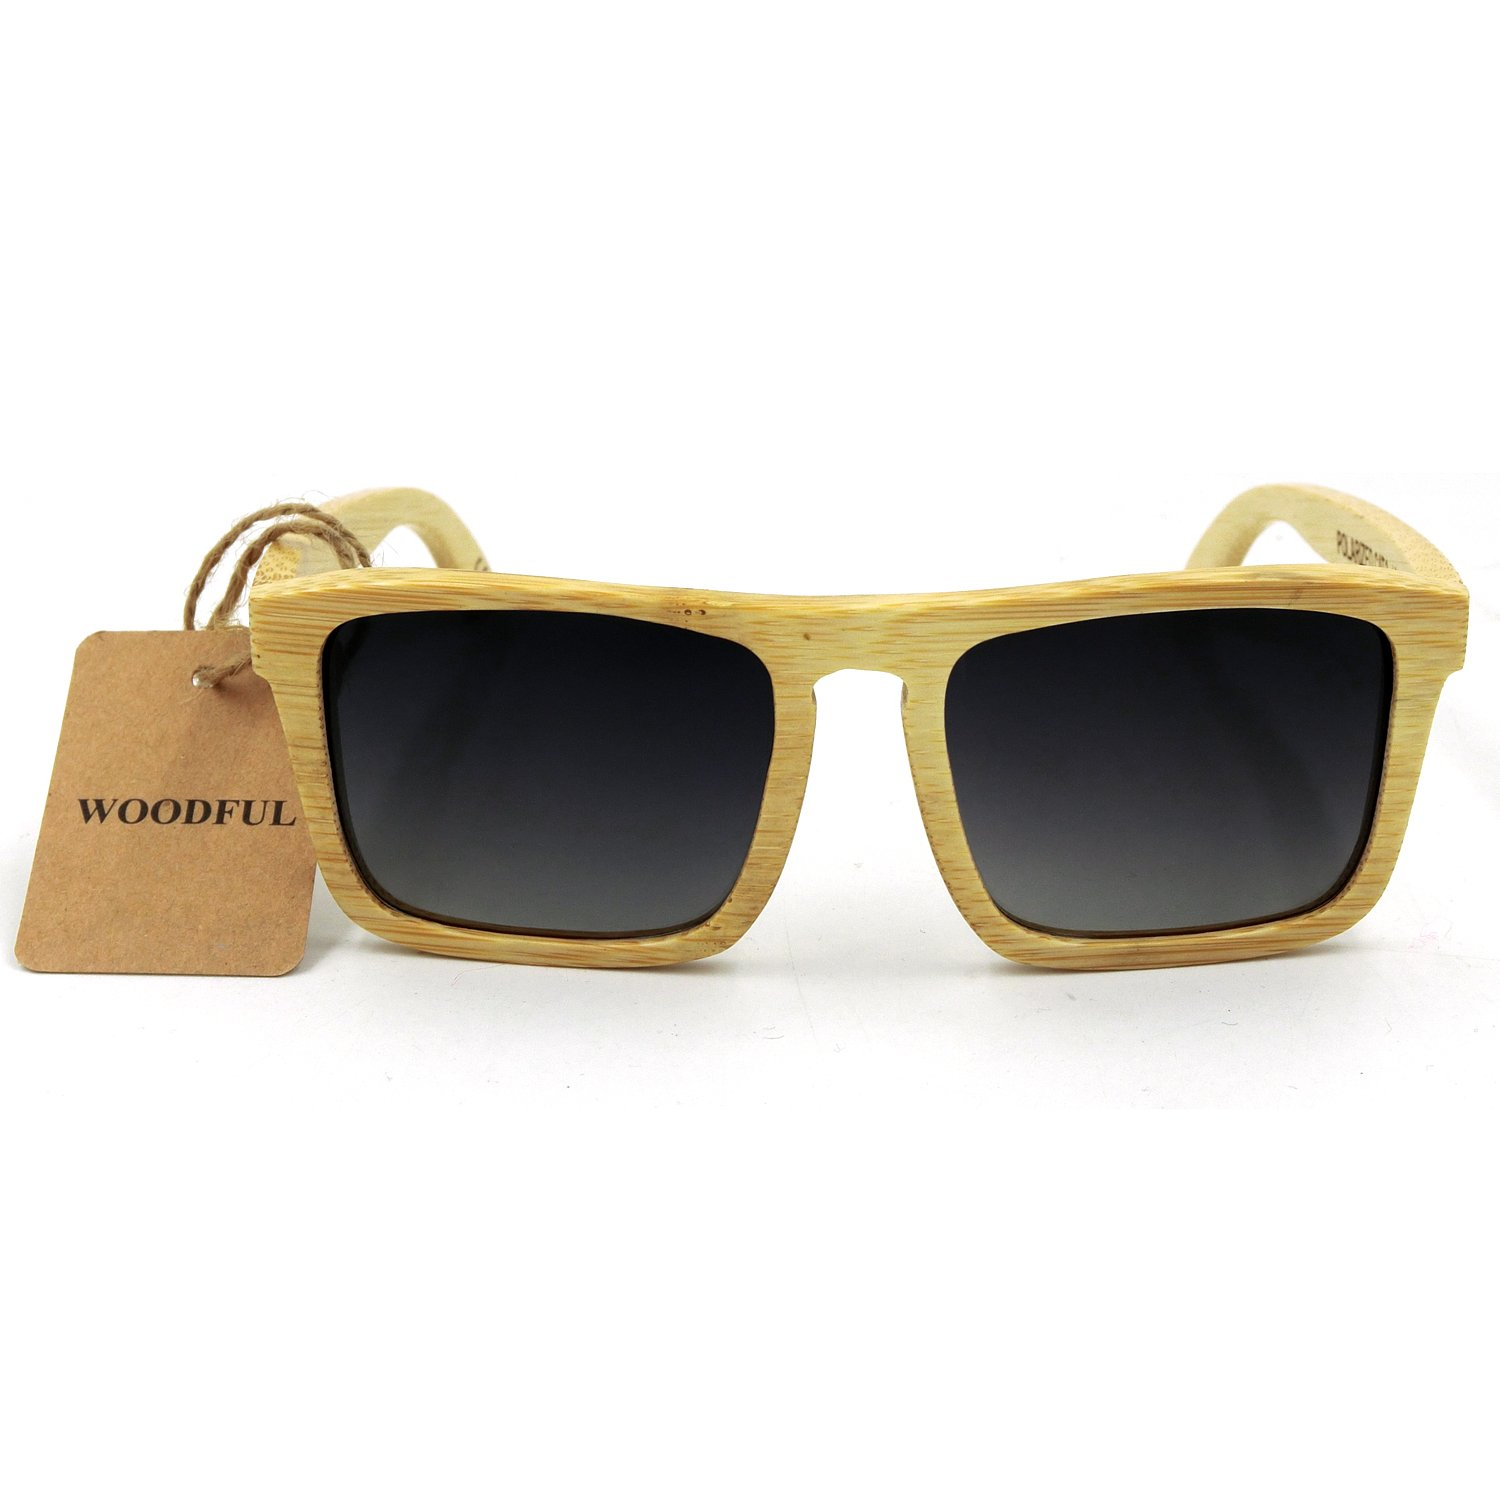 76211aac0b Amazon.com  Bamboo Sunglasses - 100% Hand Made Wooden Sun Glasses ...